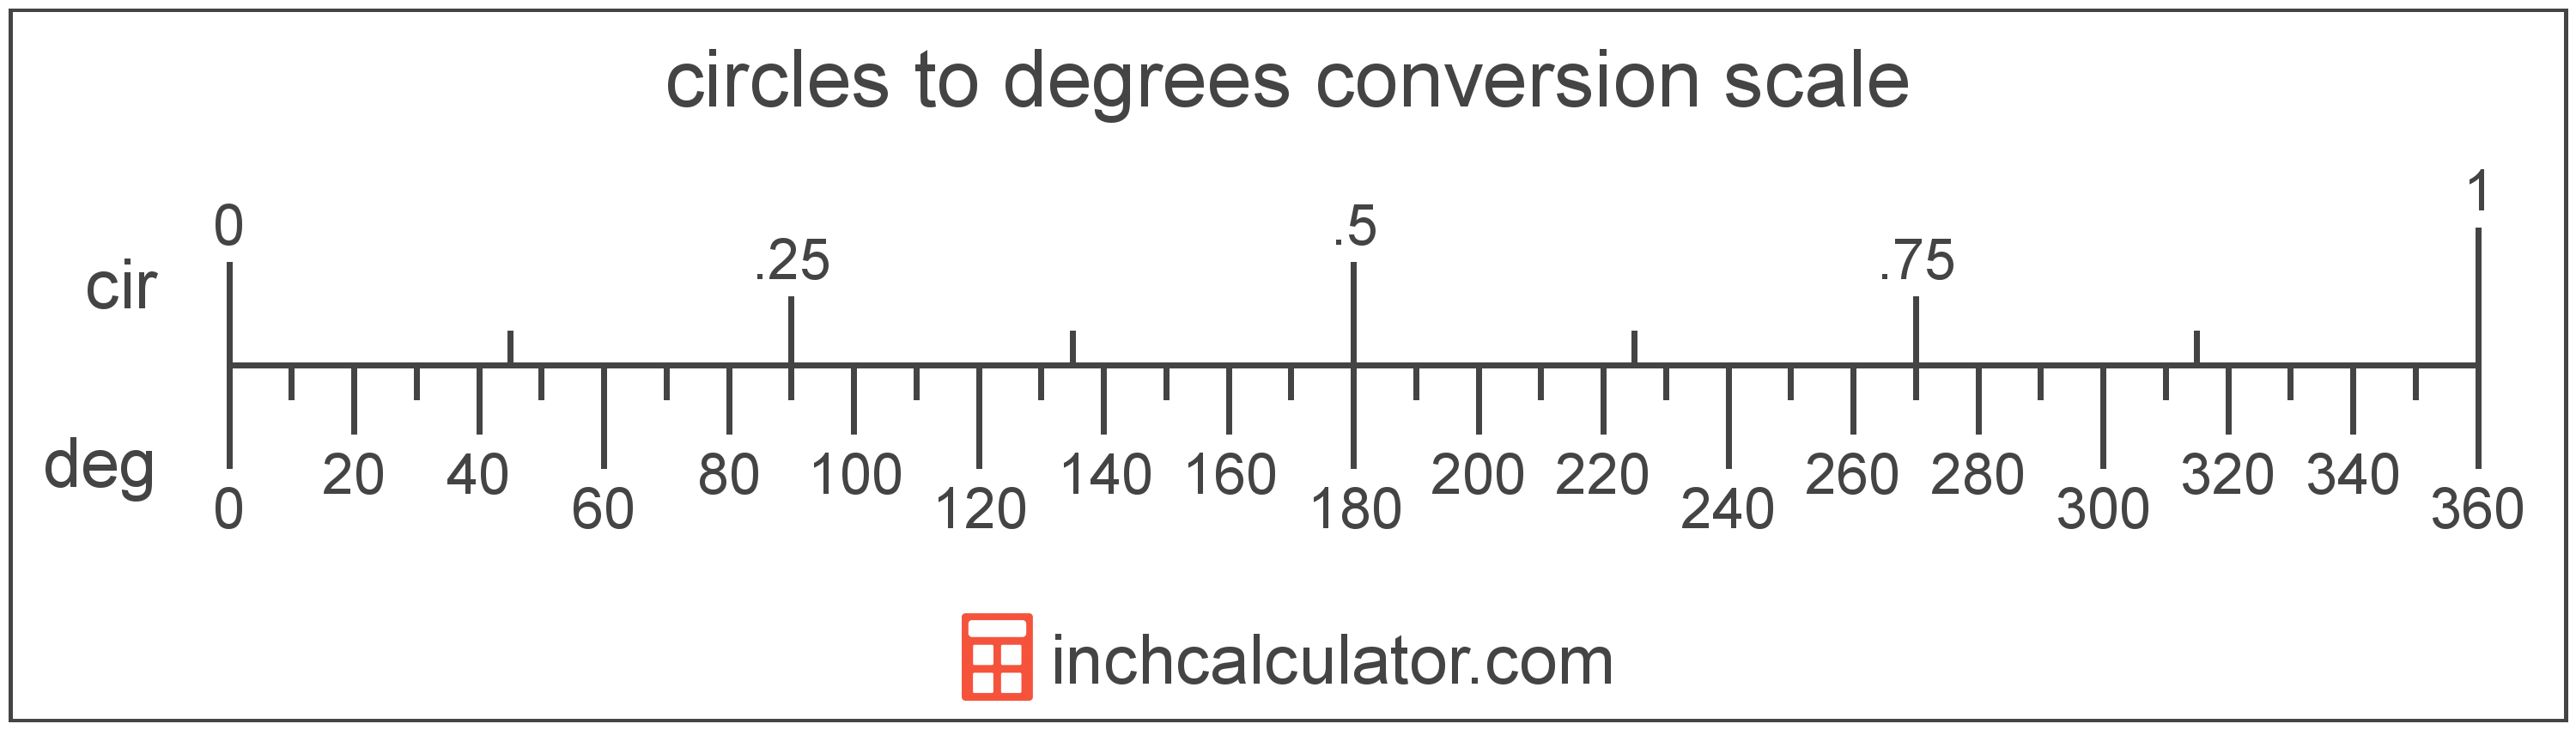 conversion scale showing circles and equivalent degrees angle values